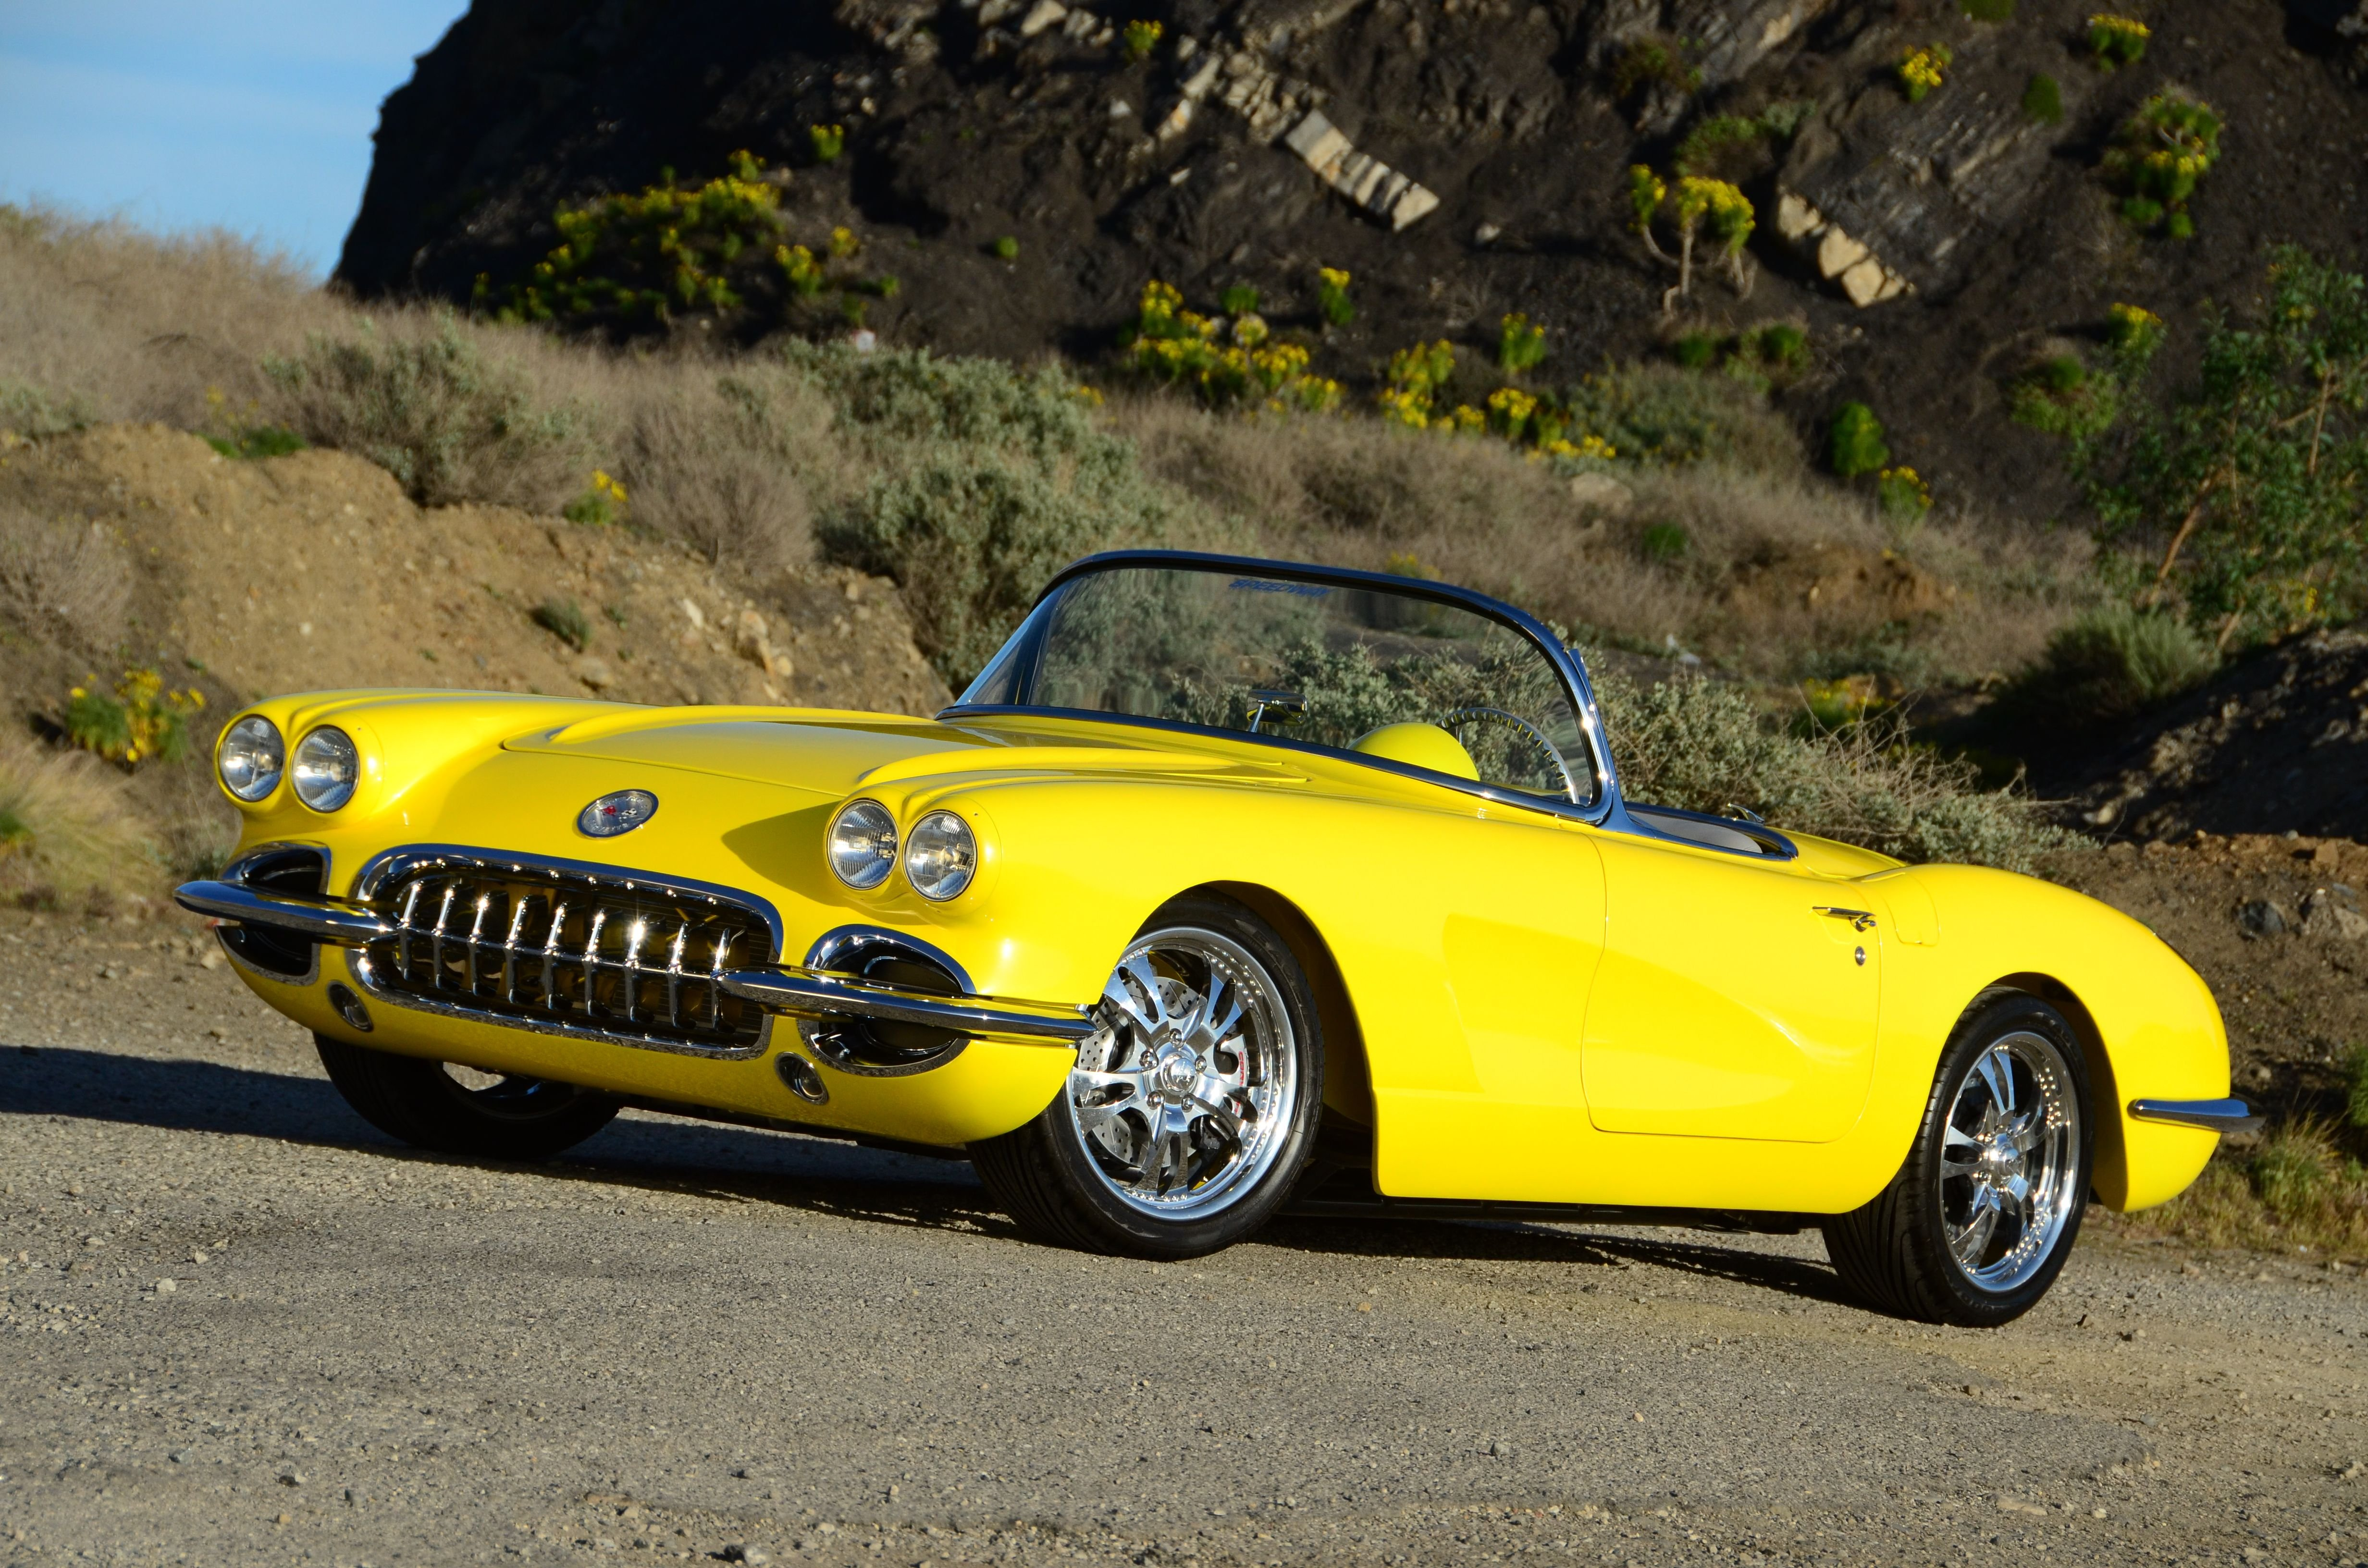 1960 Chevrolet Corvette C1 Convertible Yellow Classic